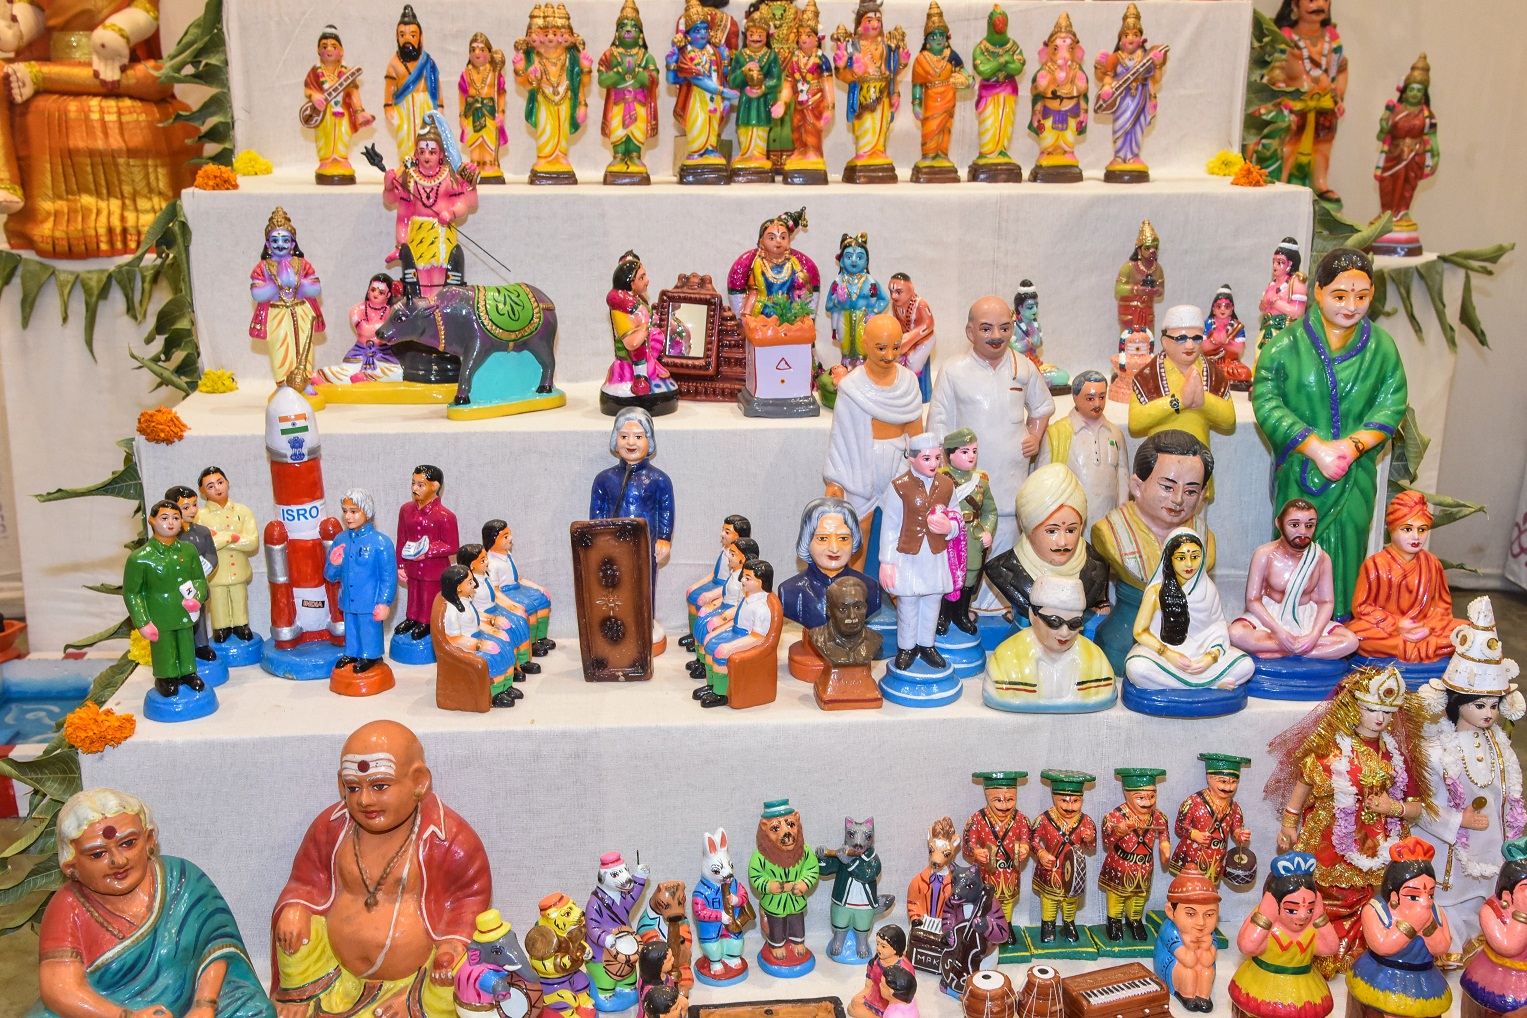 The display which has 2,000 dolls includes figurines of politicians and leaders. DH PHOTOS BY S K DINESH